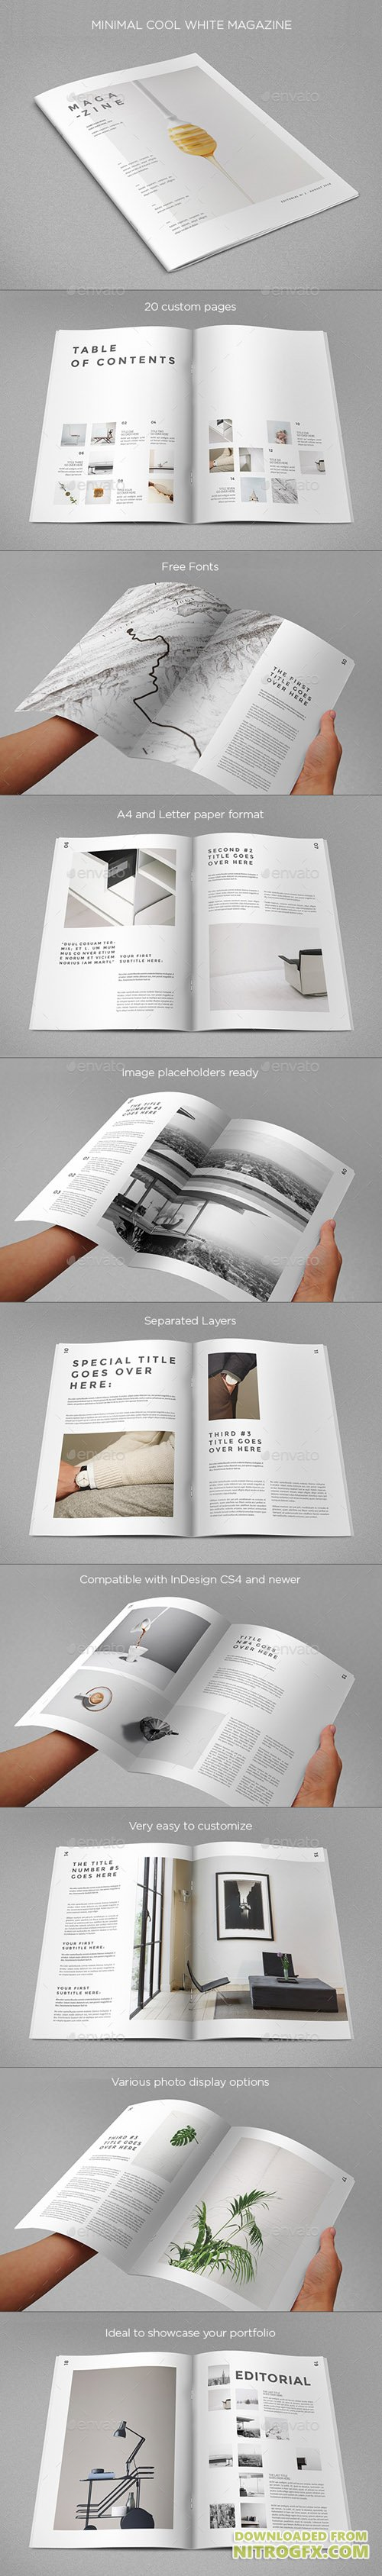 GR - Minimal Cool White Magazine 17358256